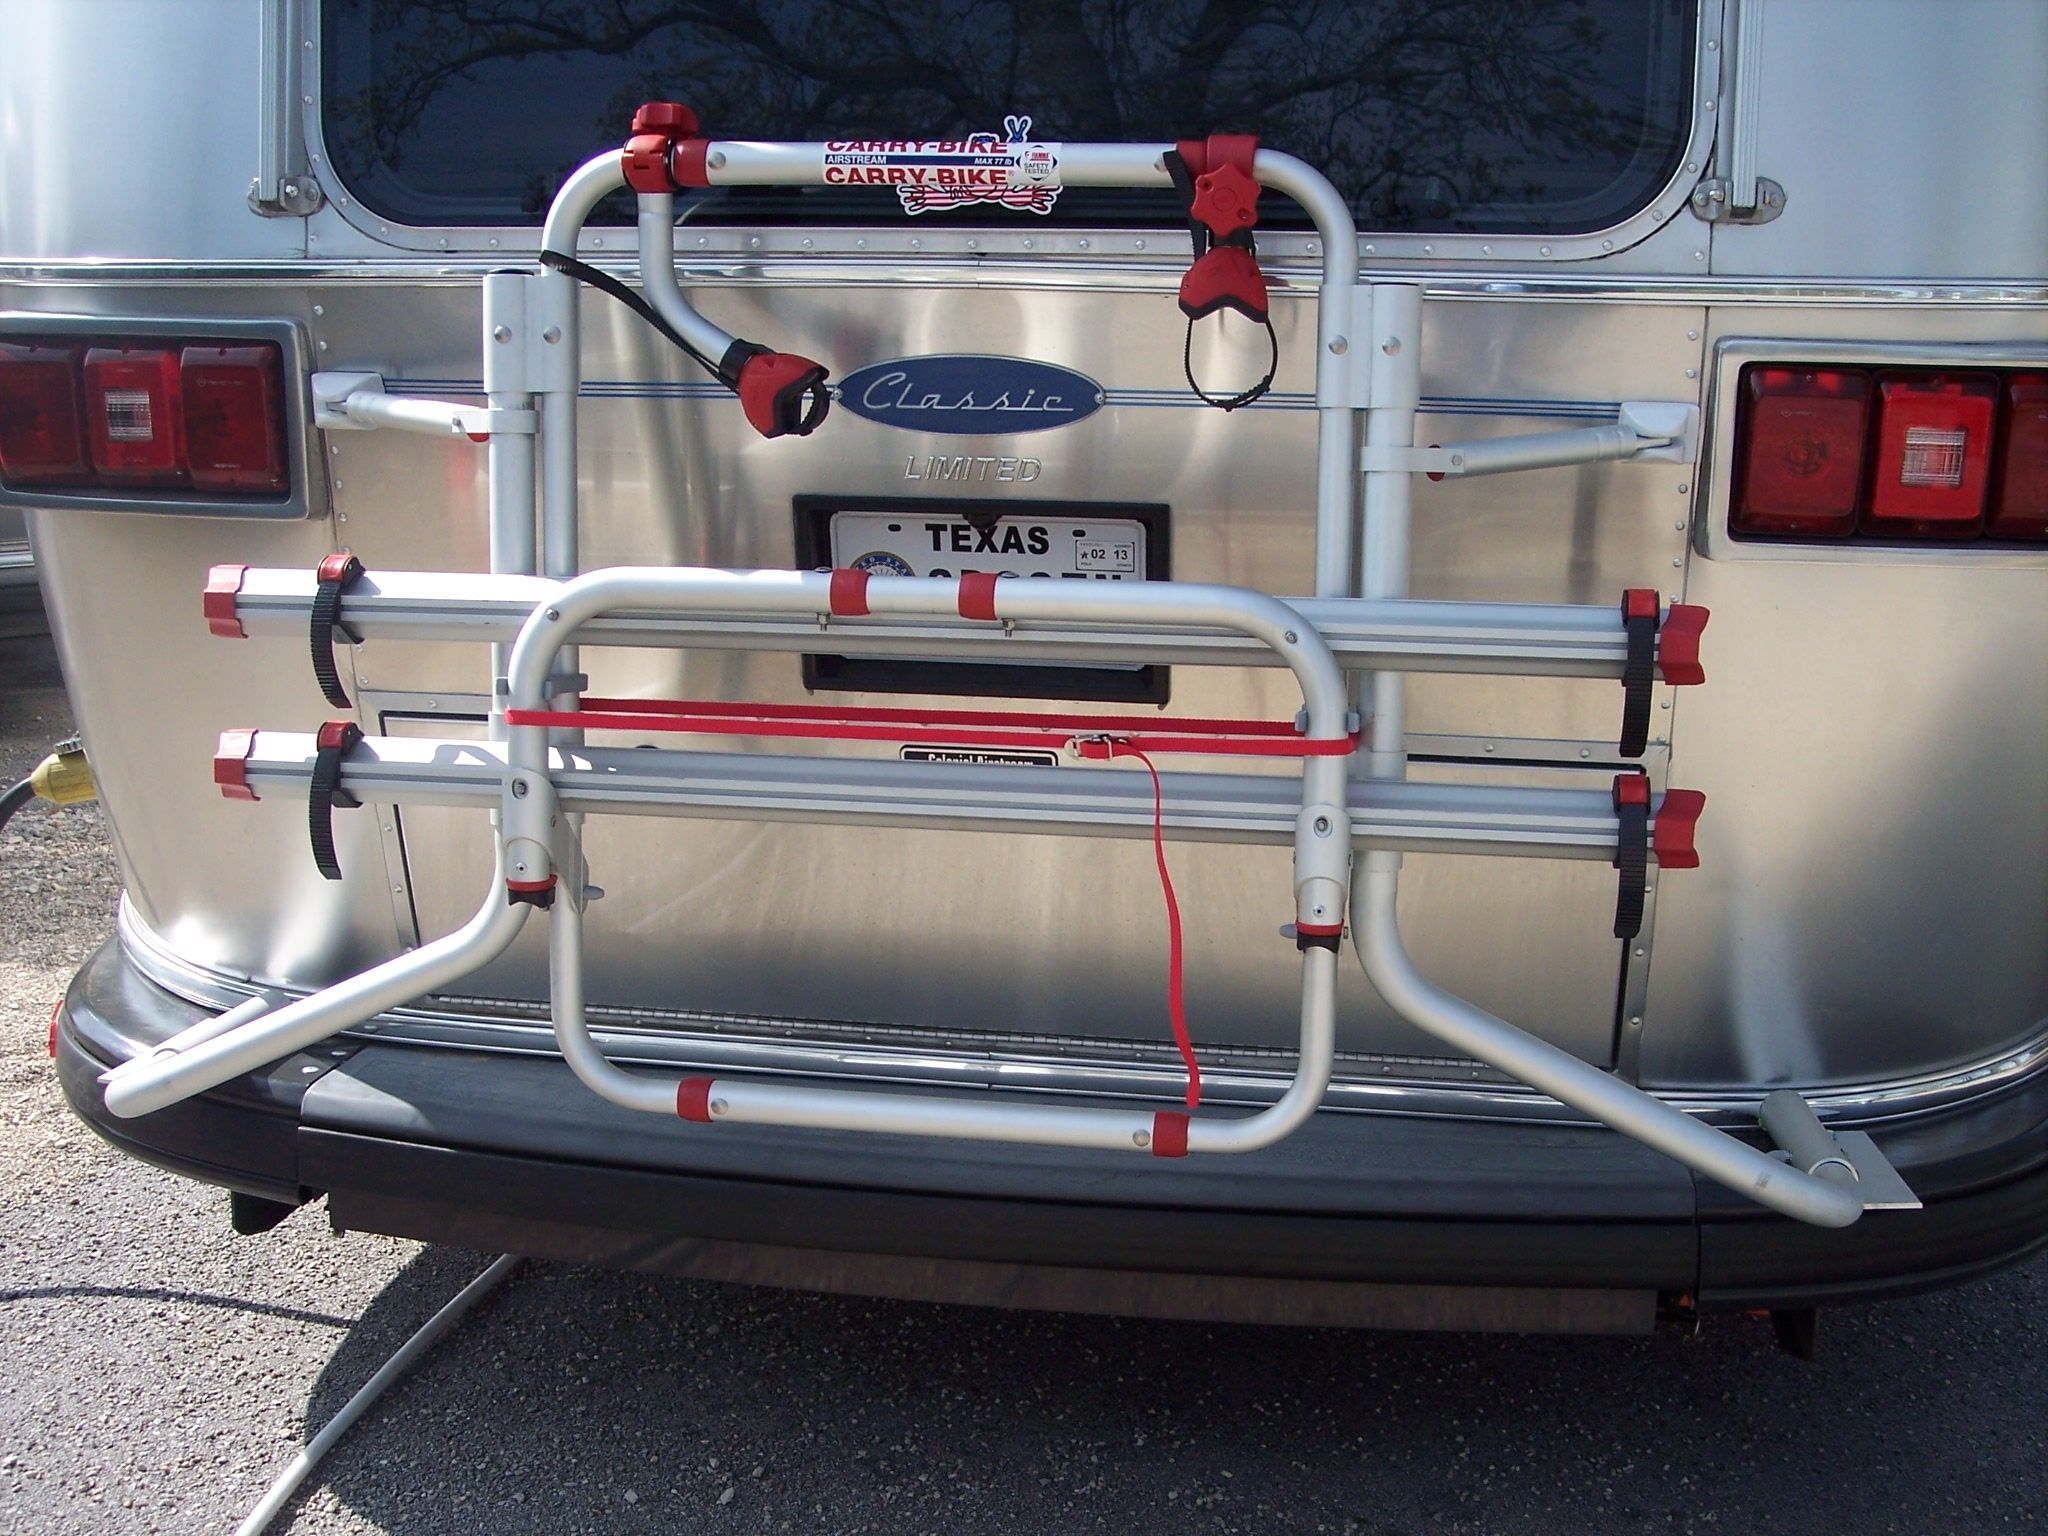 Airstream Carry Bikes By Fiamma Classic Excella Airstream Store Airstream Airstream Travel Trailers Rv Living Full Time